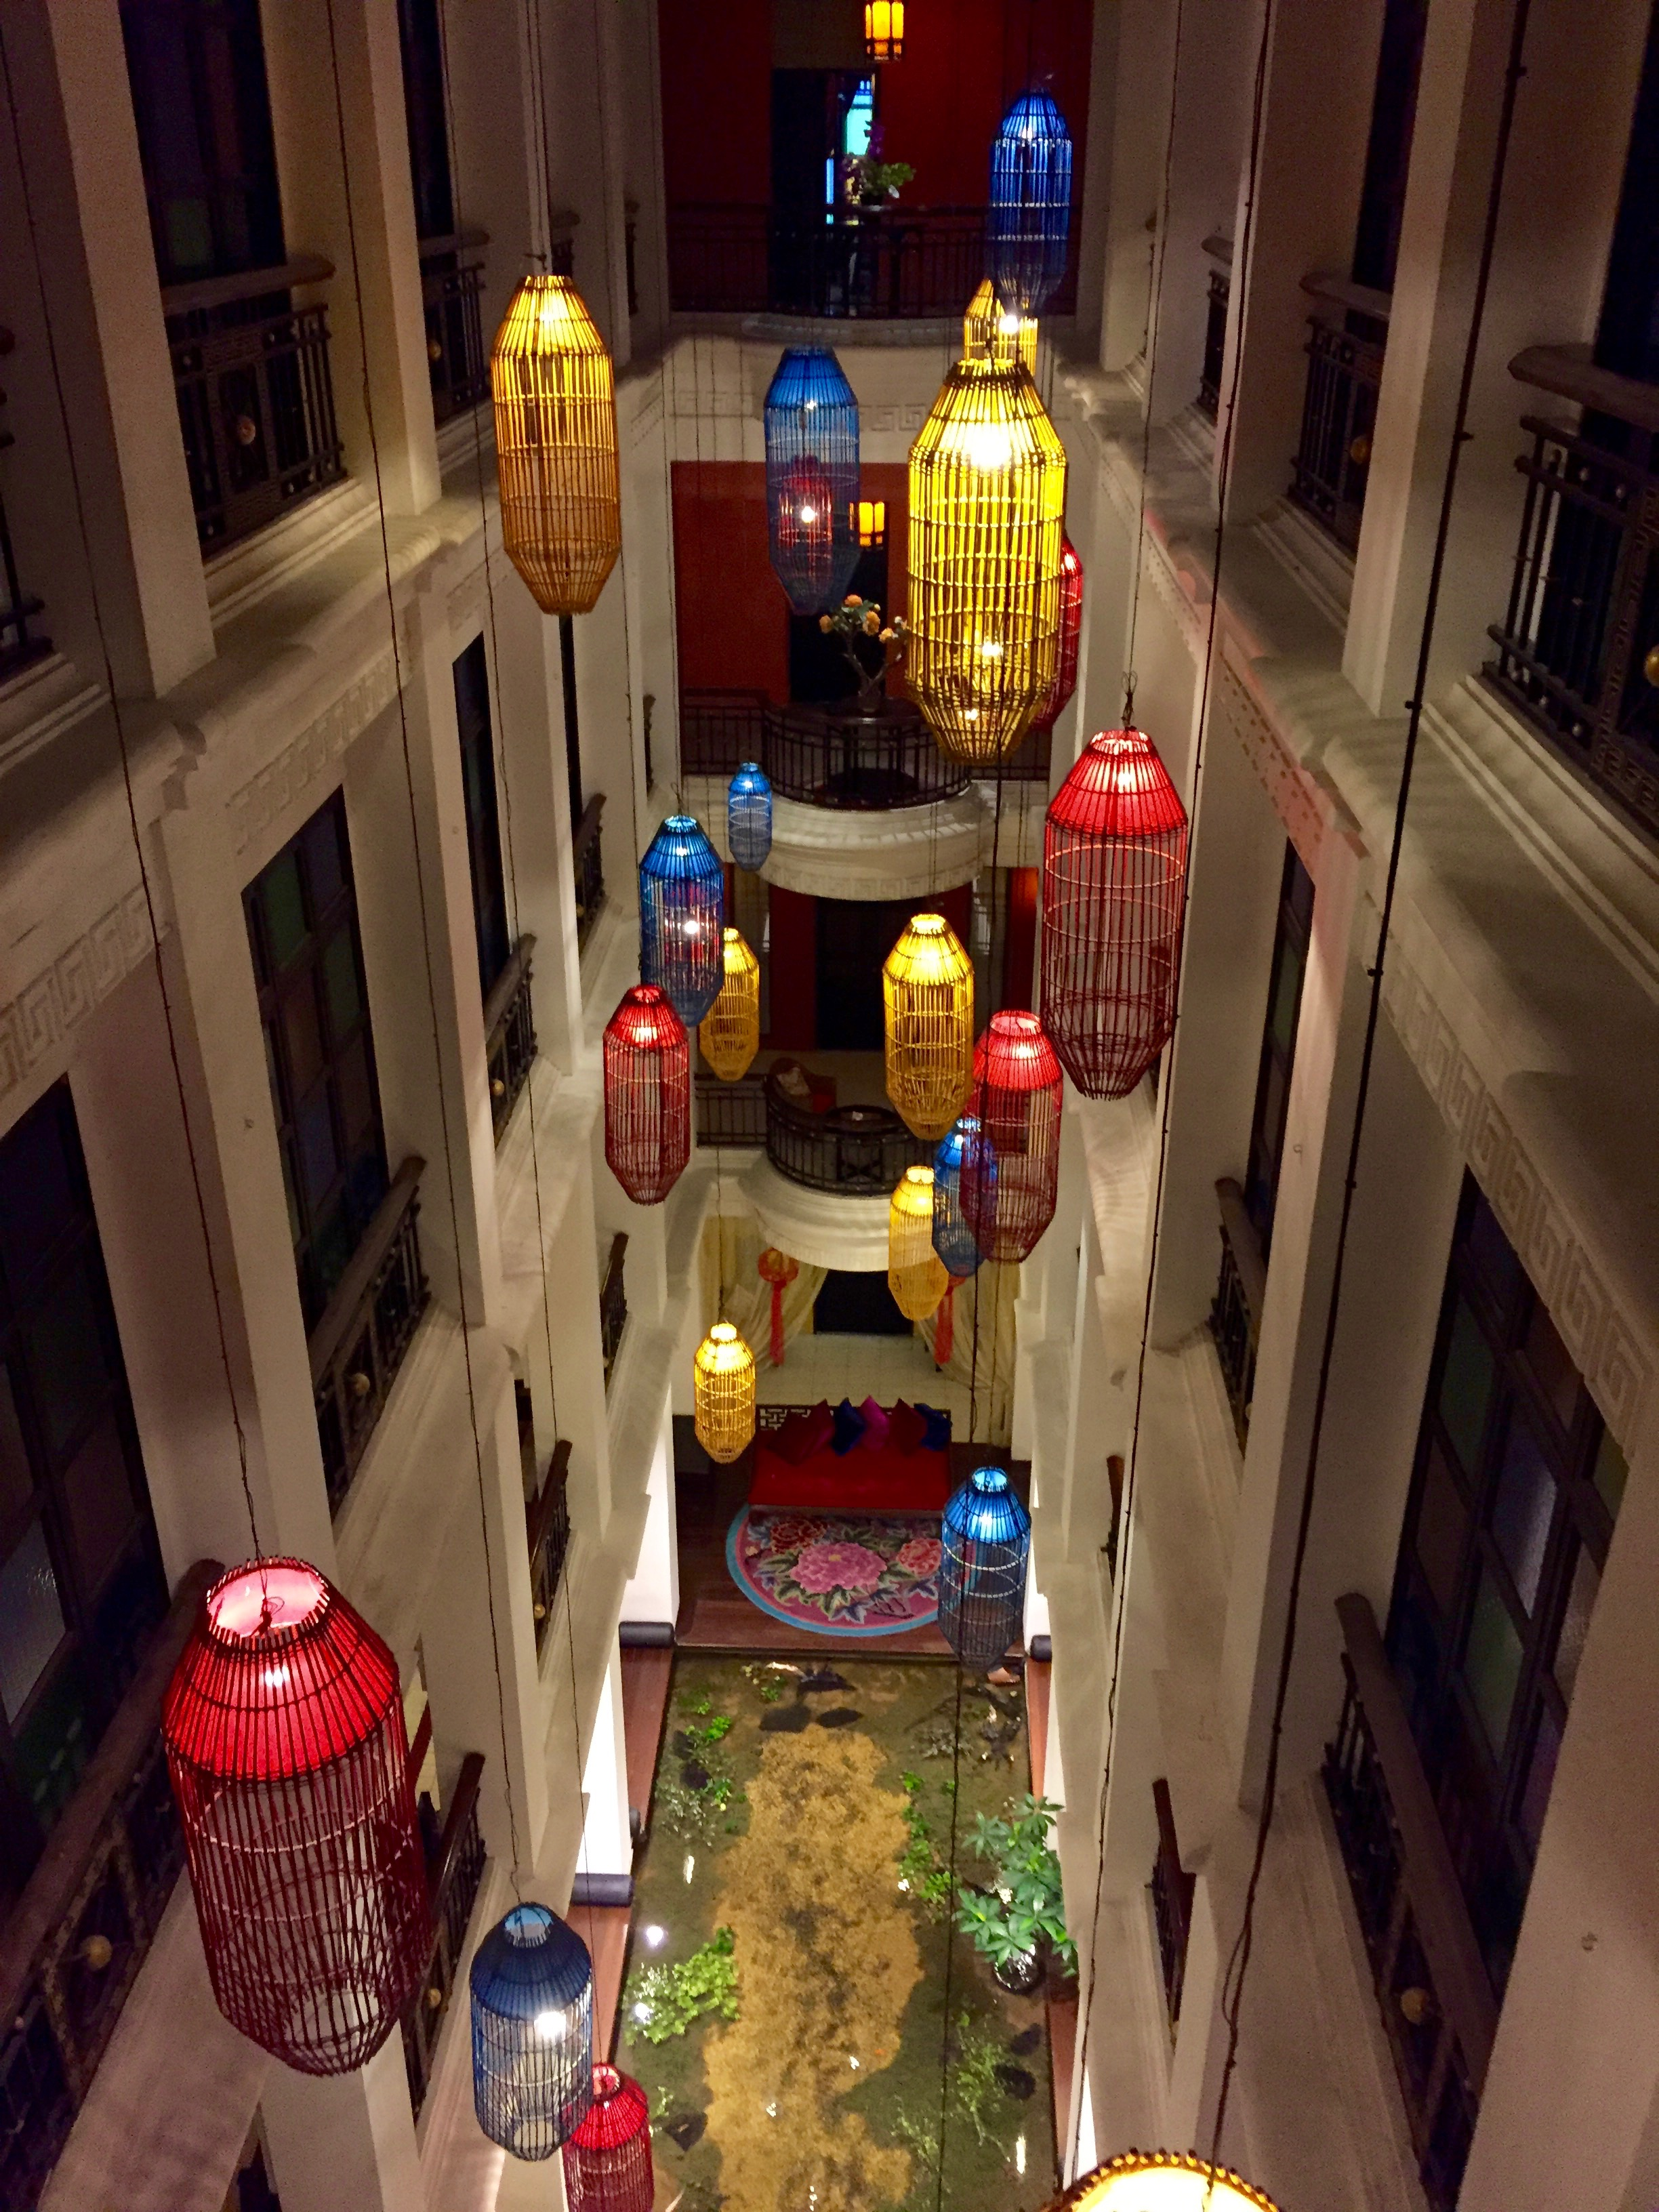 The lobby of the Shanghai Mansion Hotel in Bangkok's Chinatown, was so much fun.  The faux colonial hotel reminded me of the Cheong Fatt Tze Mansion of Penang.